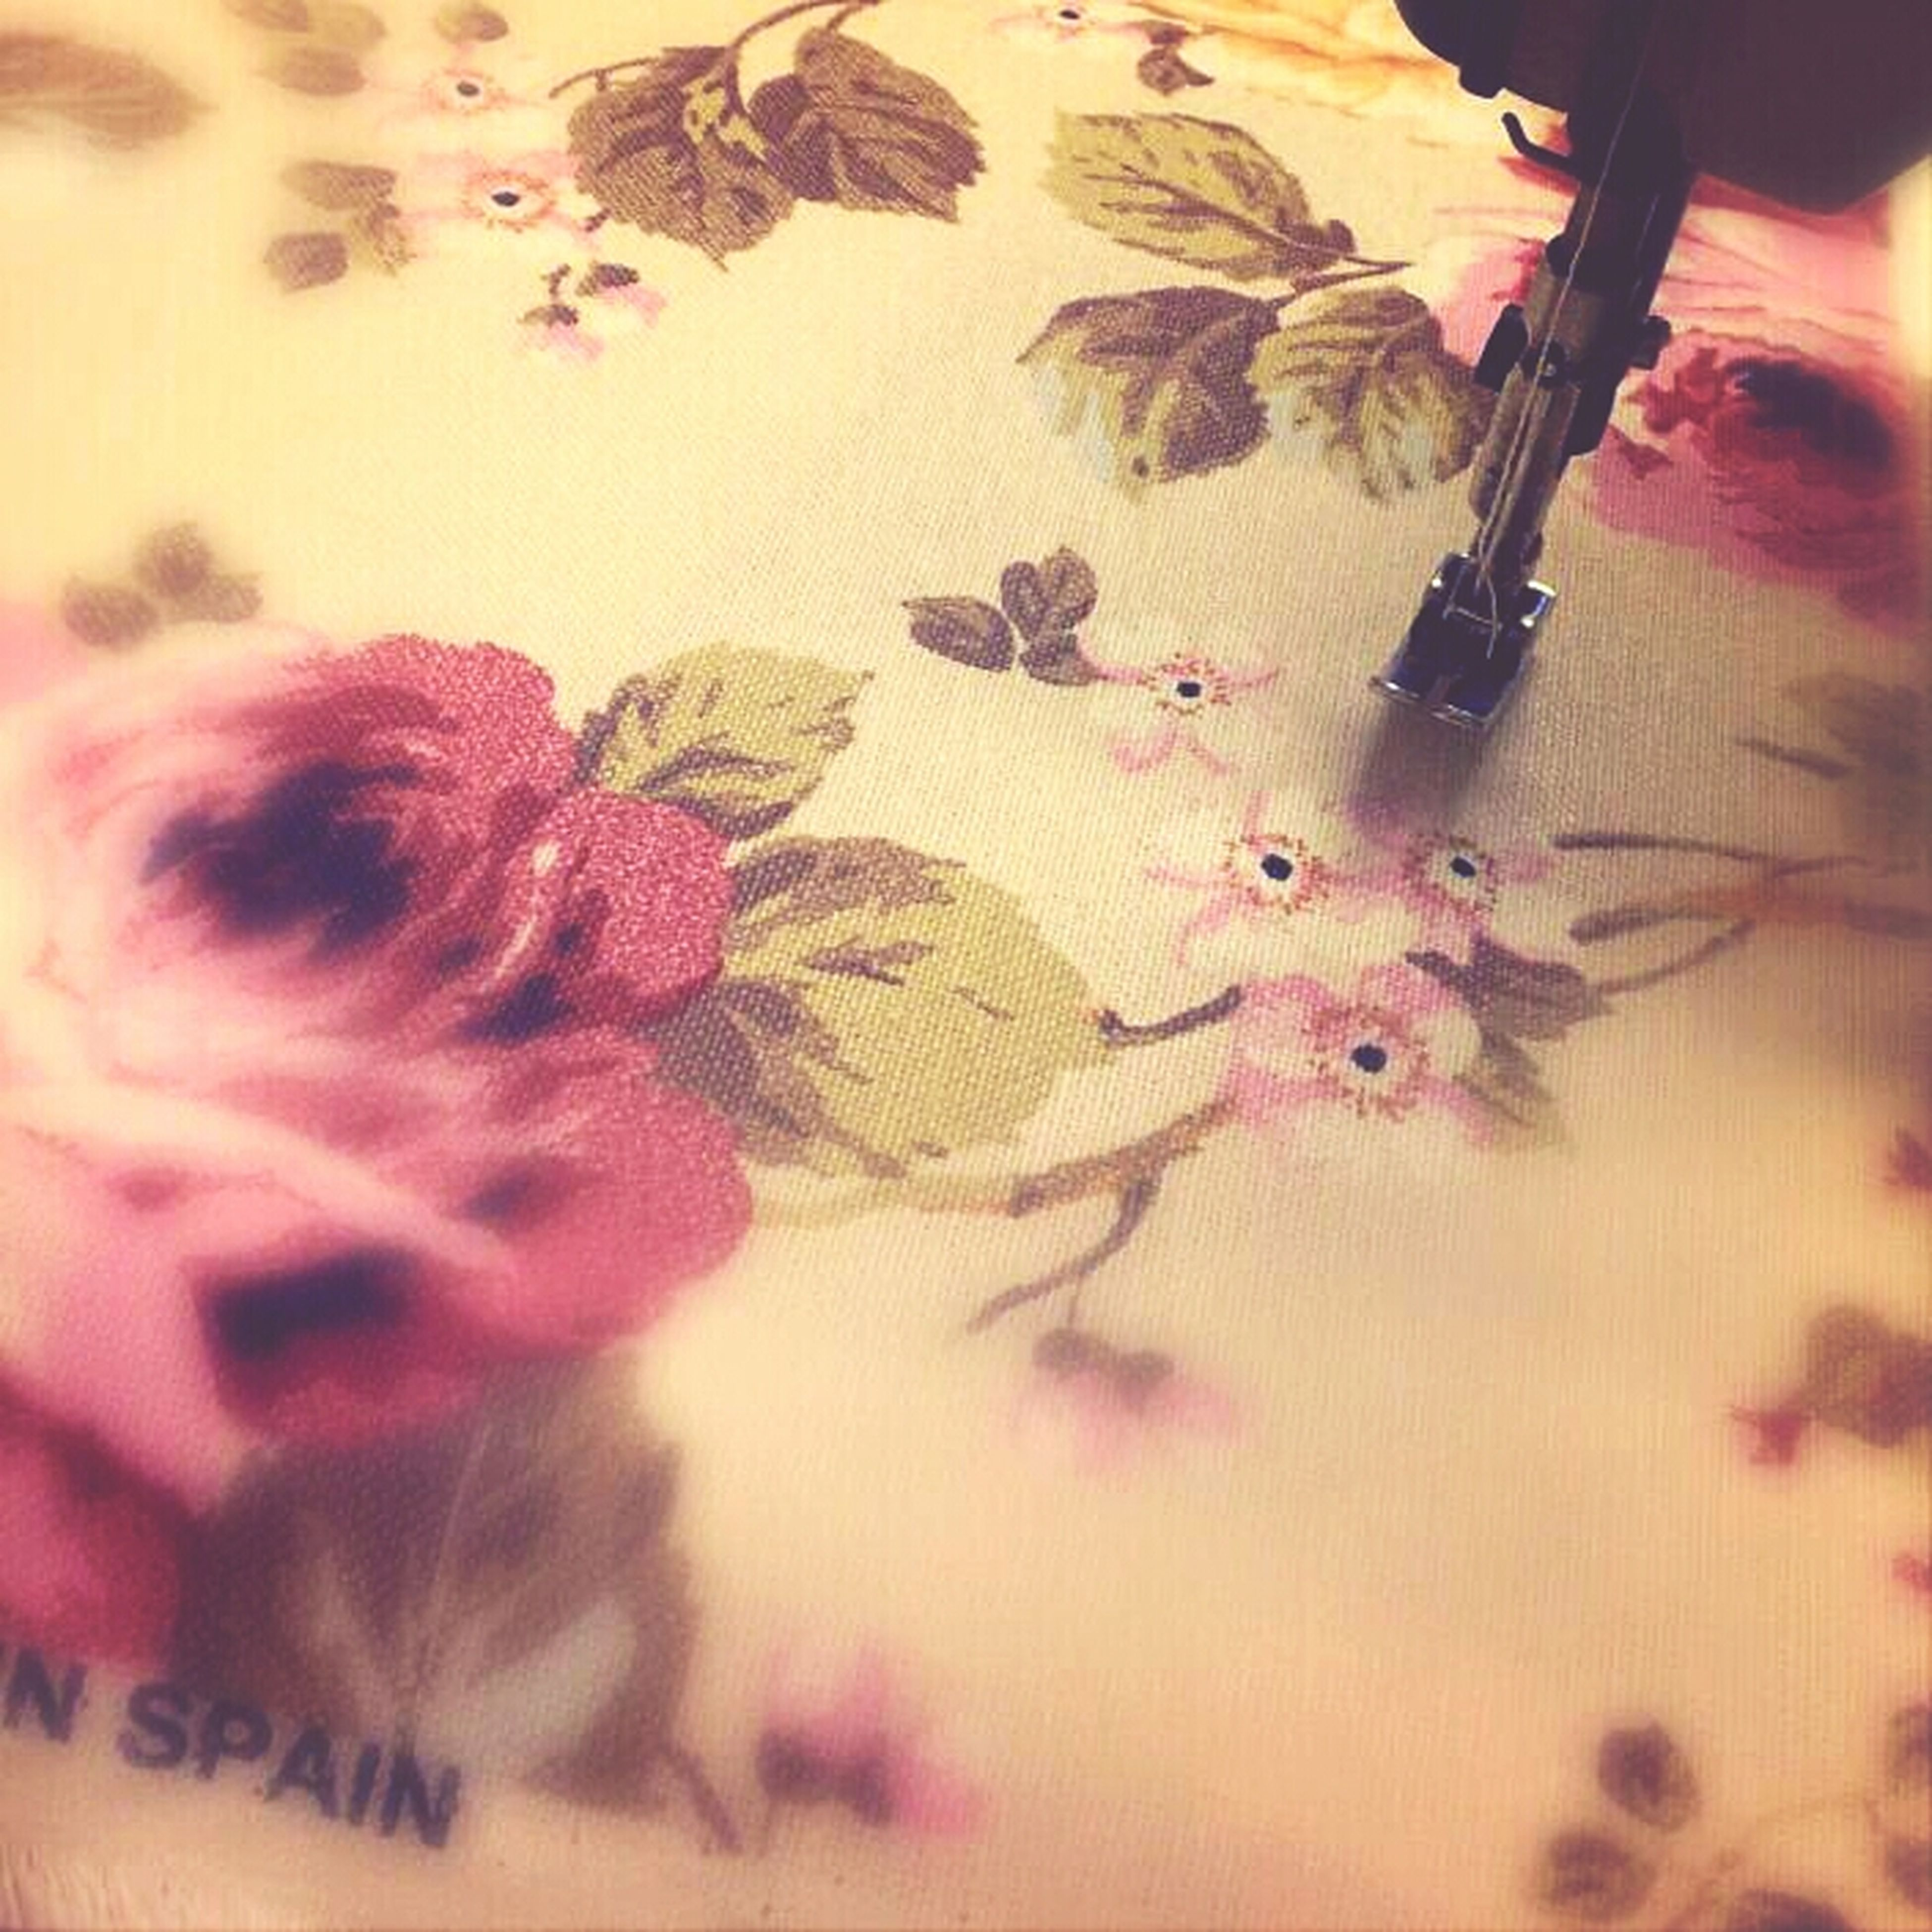 indoors, high angle view, close-up, table, floral pattern, creativity, home interior, art and craft, bed, pink color, art, messy, part of, textile, fabric, still life, person, selective focus